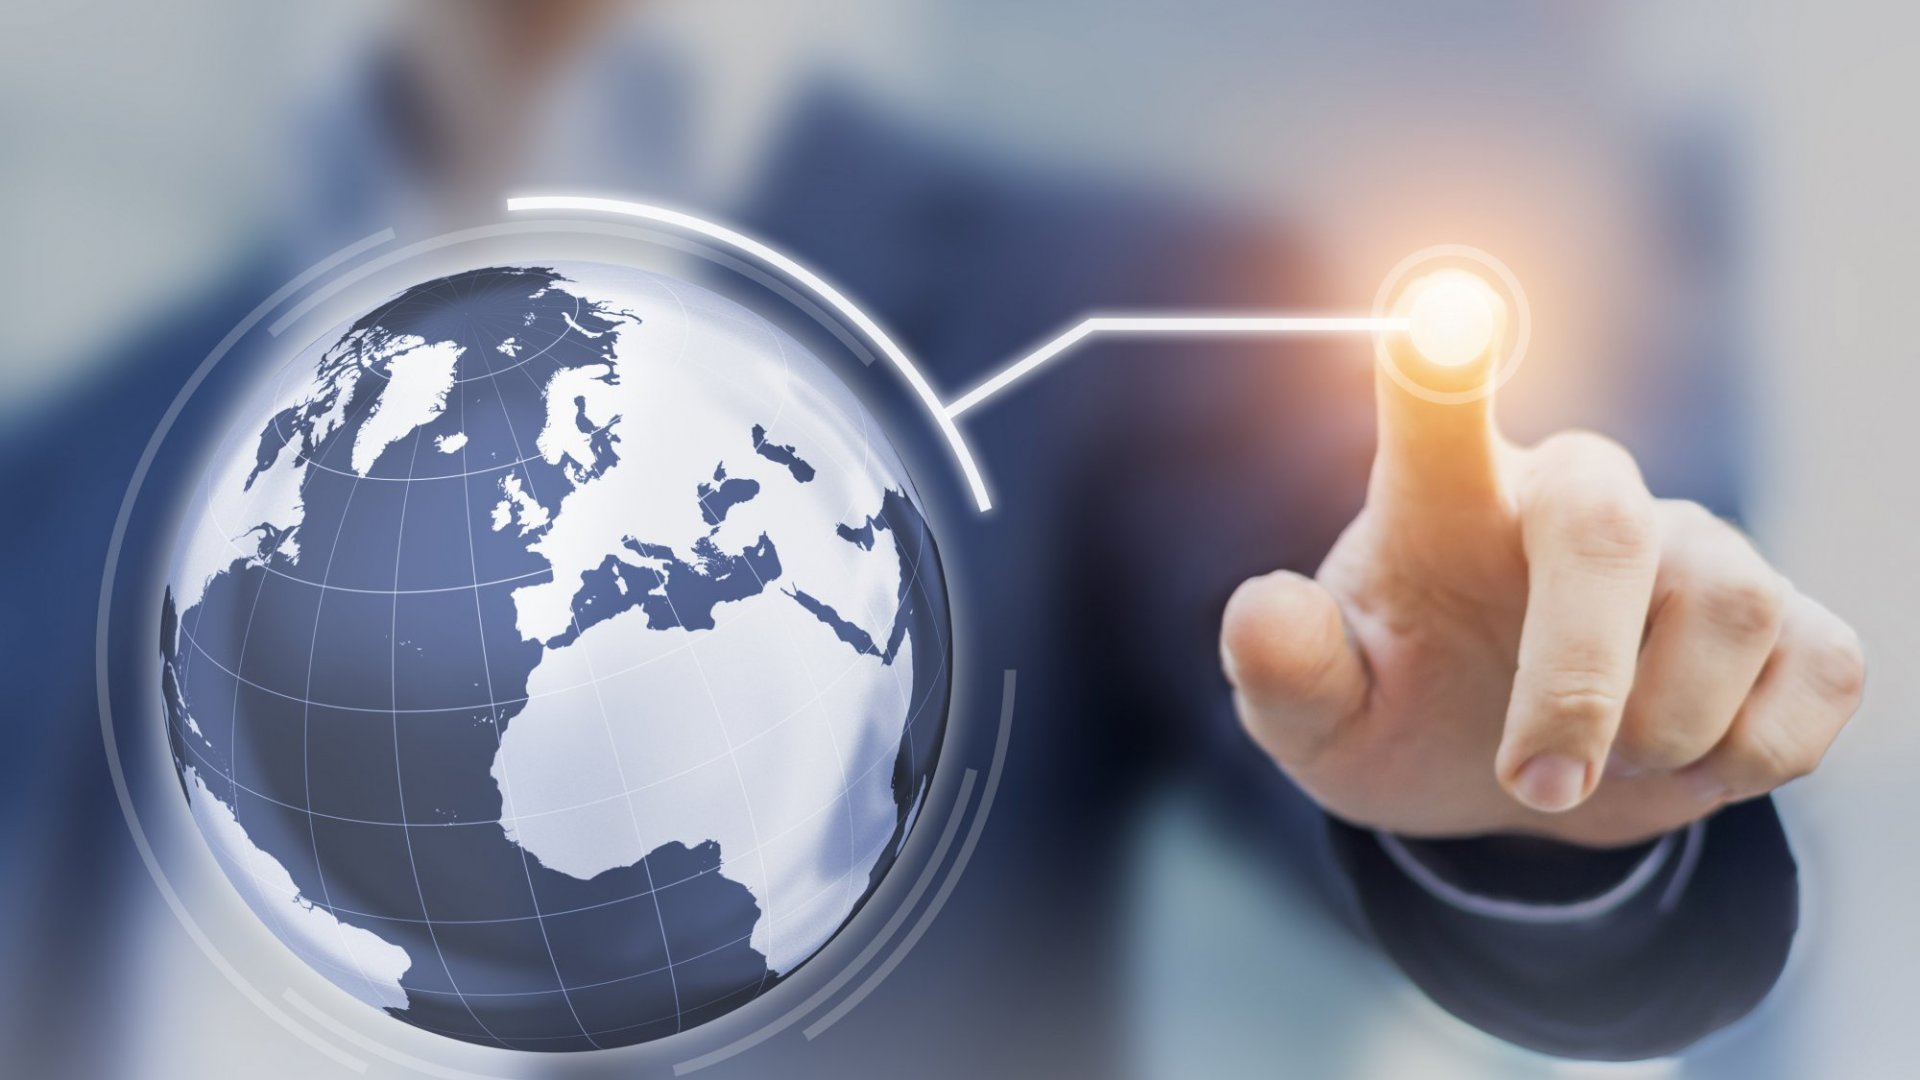 New Global Managers: Tools and Tips You'll Need to Be Successful